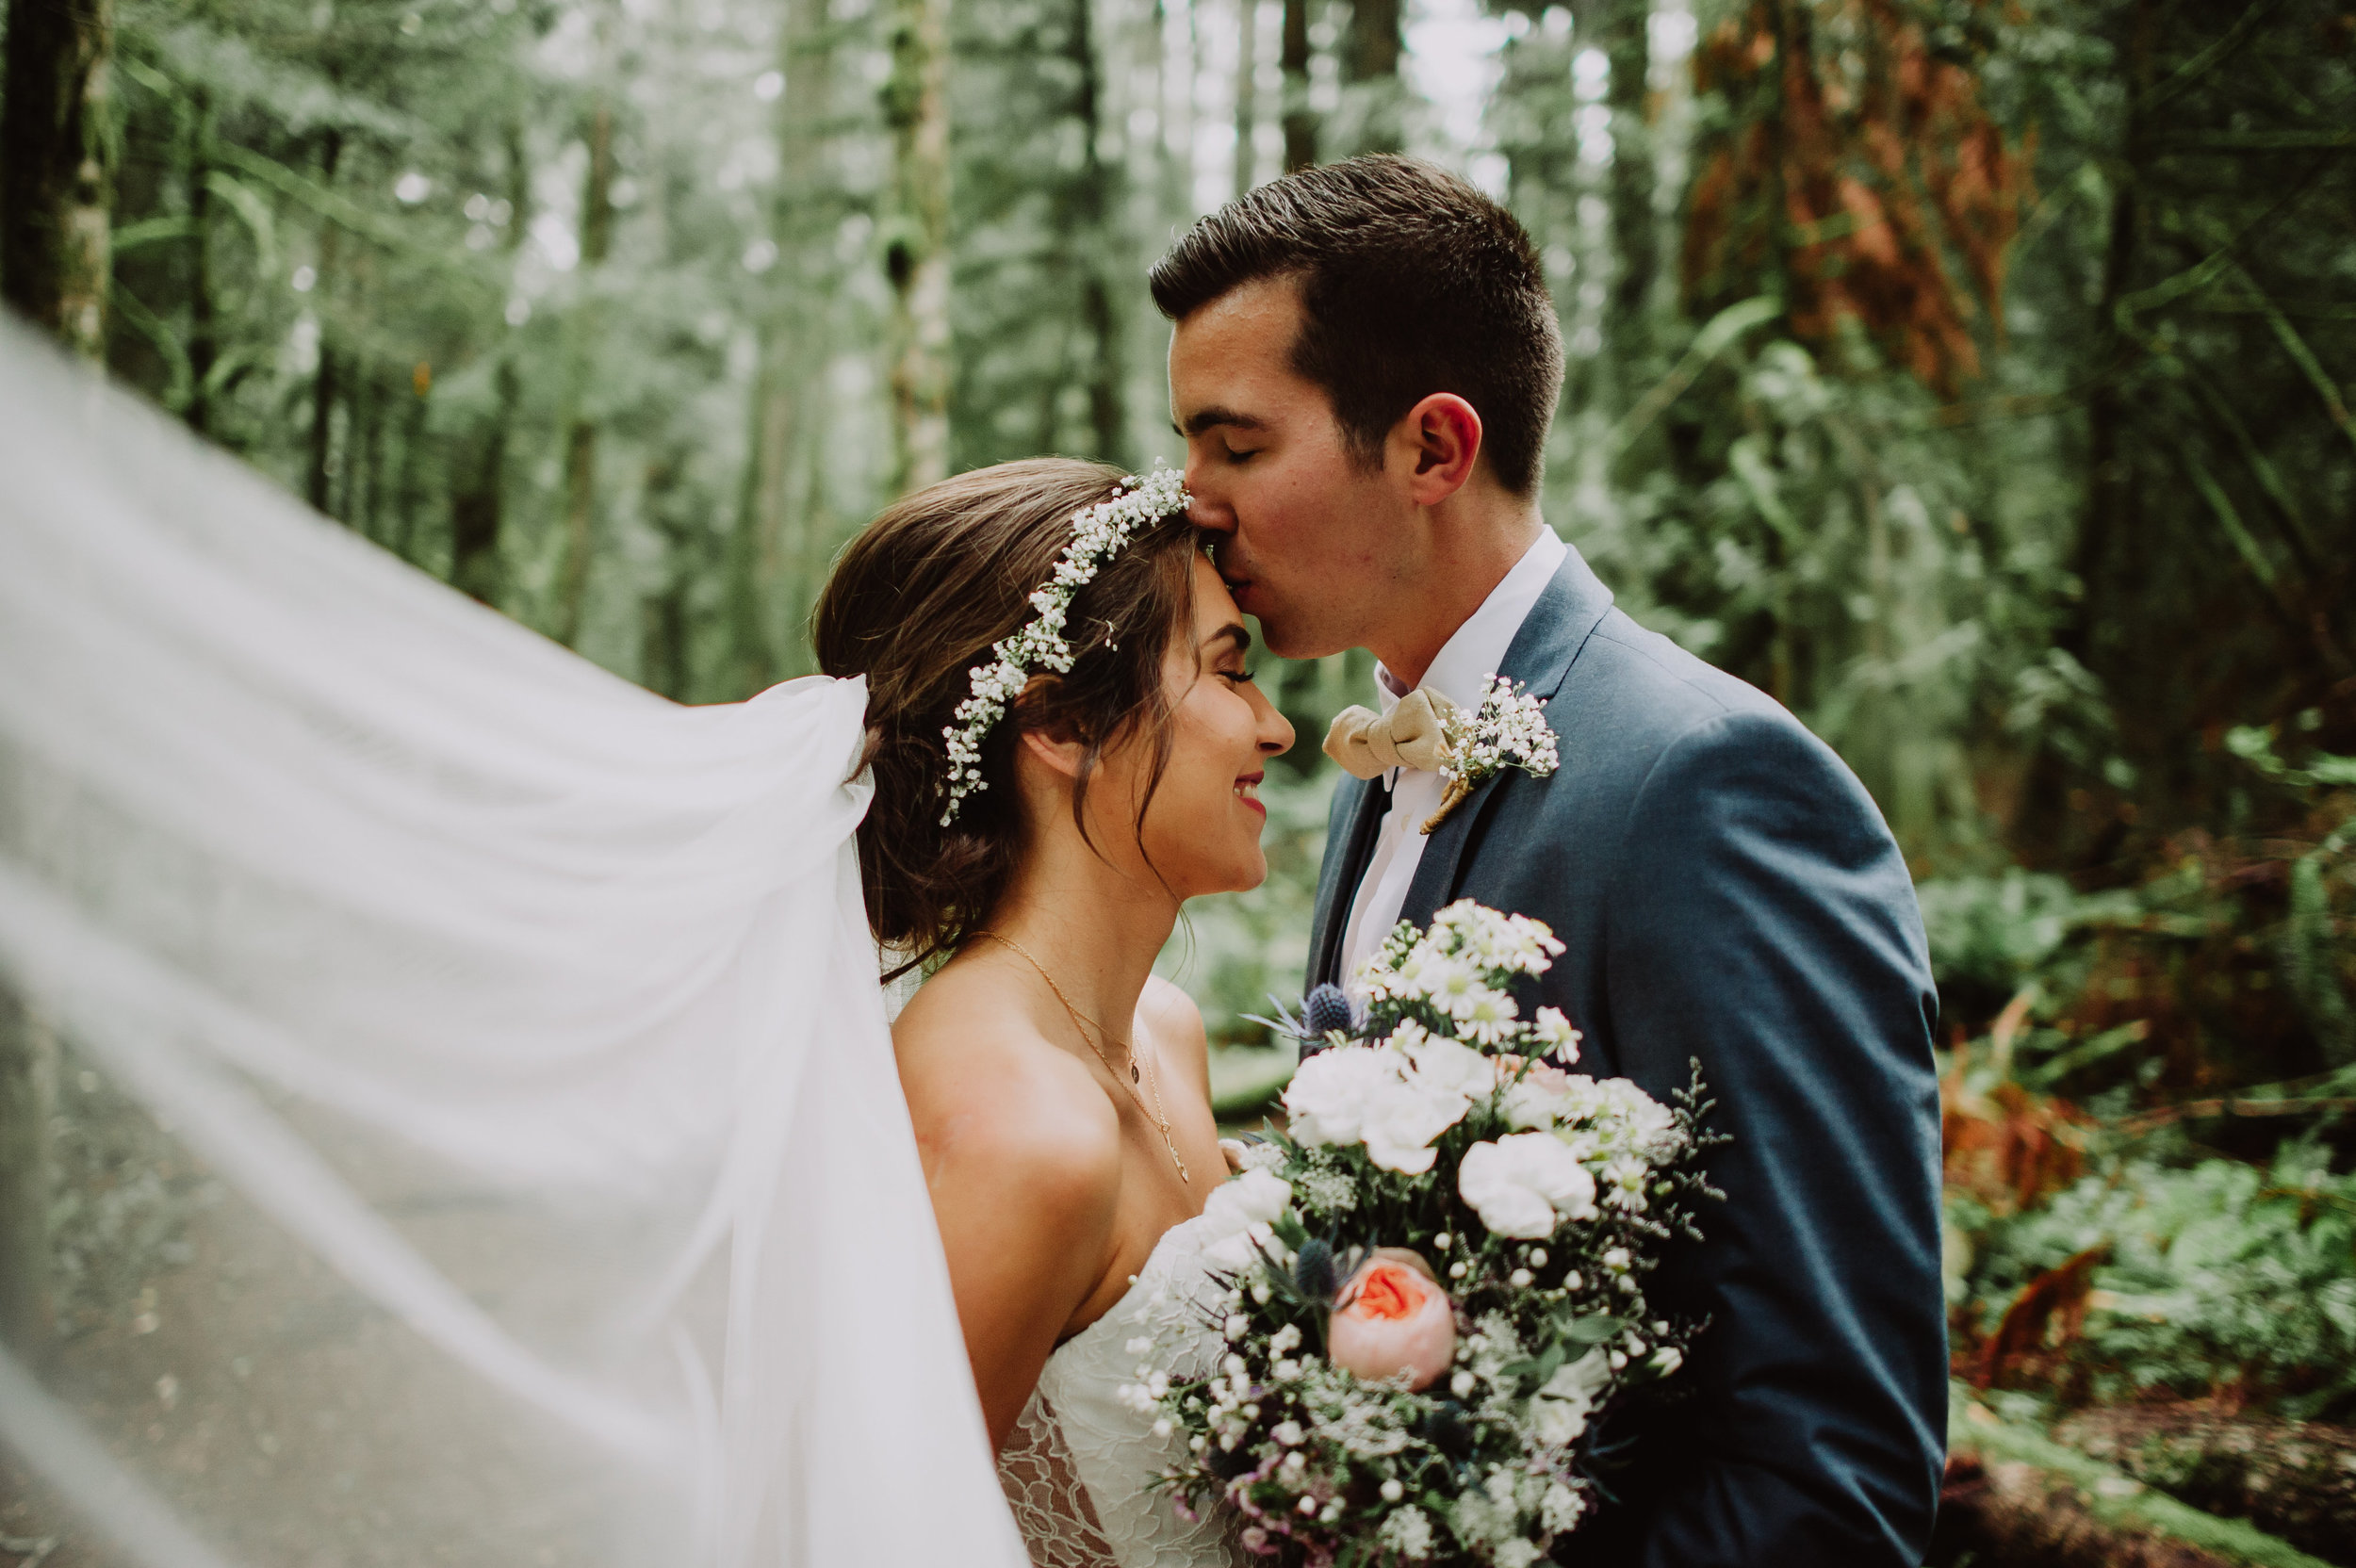 Alex + Dom  Sunshine Coast Golf & Country Club | With a Wild Heart Collective